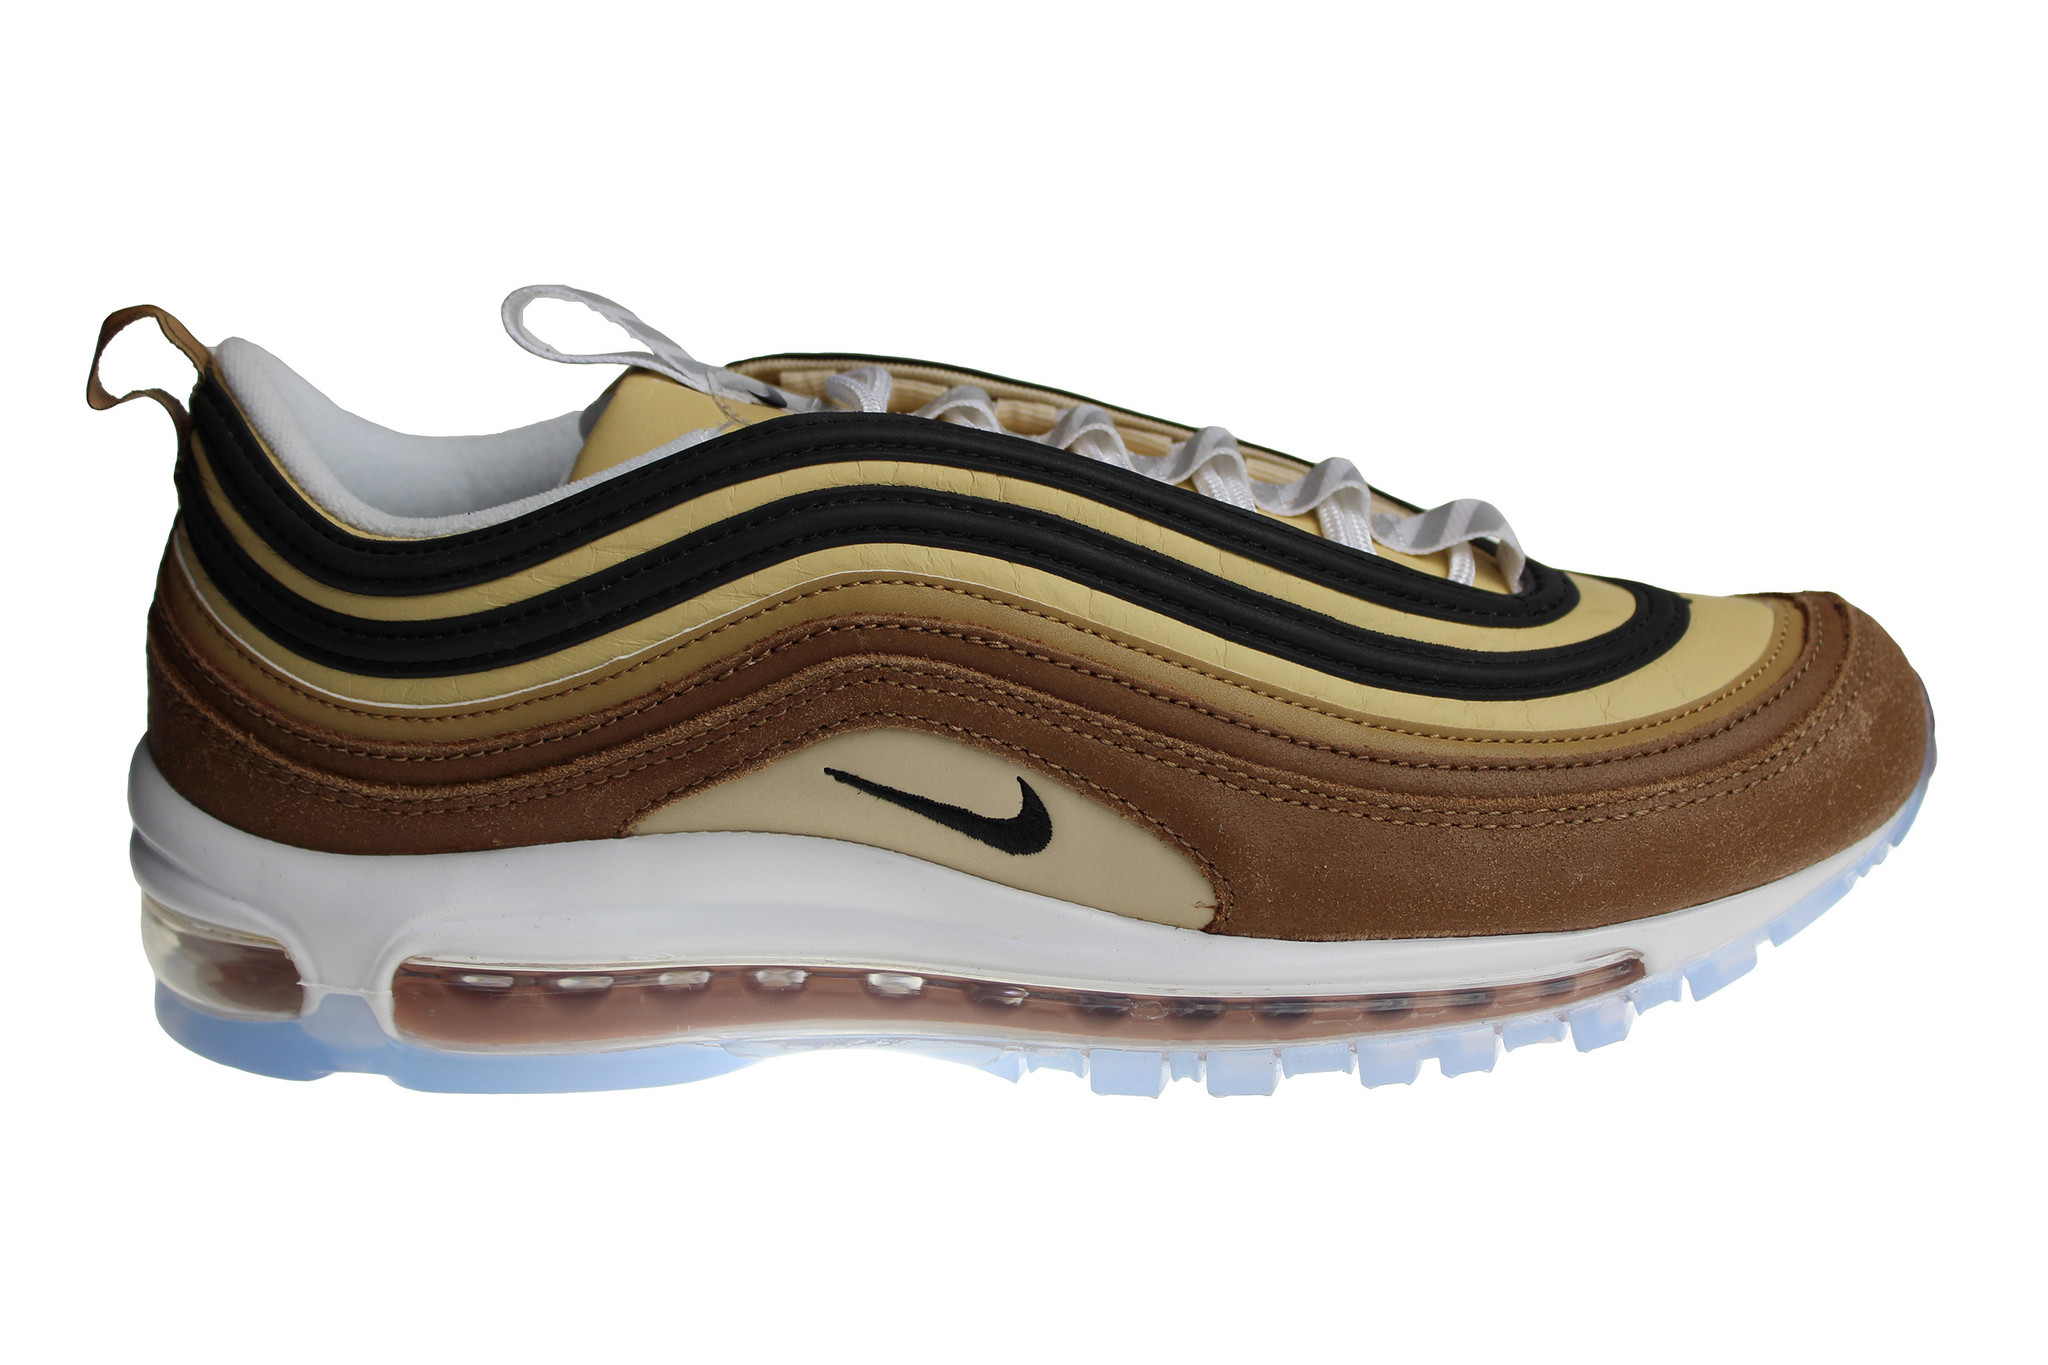 f3ac918f7f Nike Air Max 97 Men's Shoes 921826 201 Brown/Beige